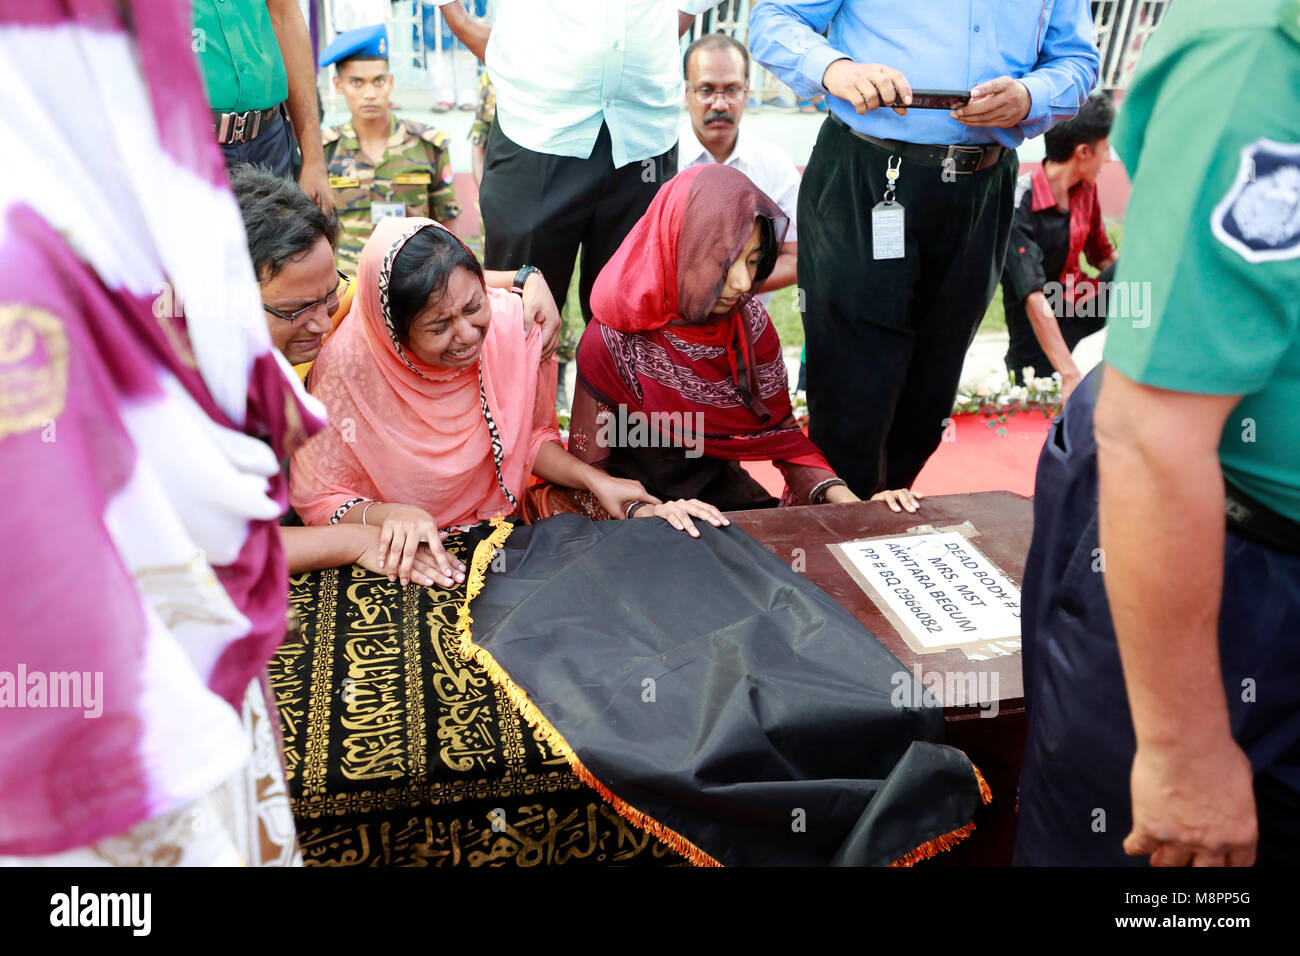 Dhaka, Bangladesh. 19th March, 2018.  Grief-stricken relatives of the US-Bangla plane crash victims at the Bangladesh Stock Photo